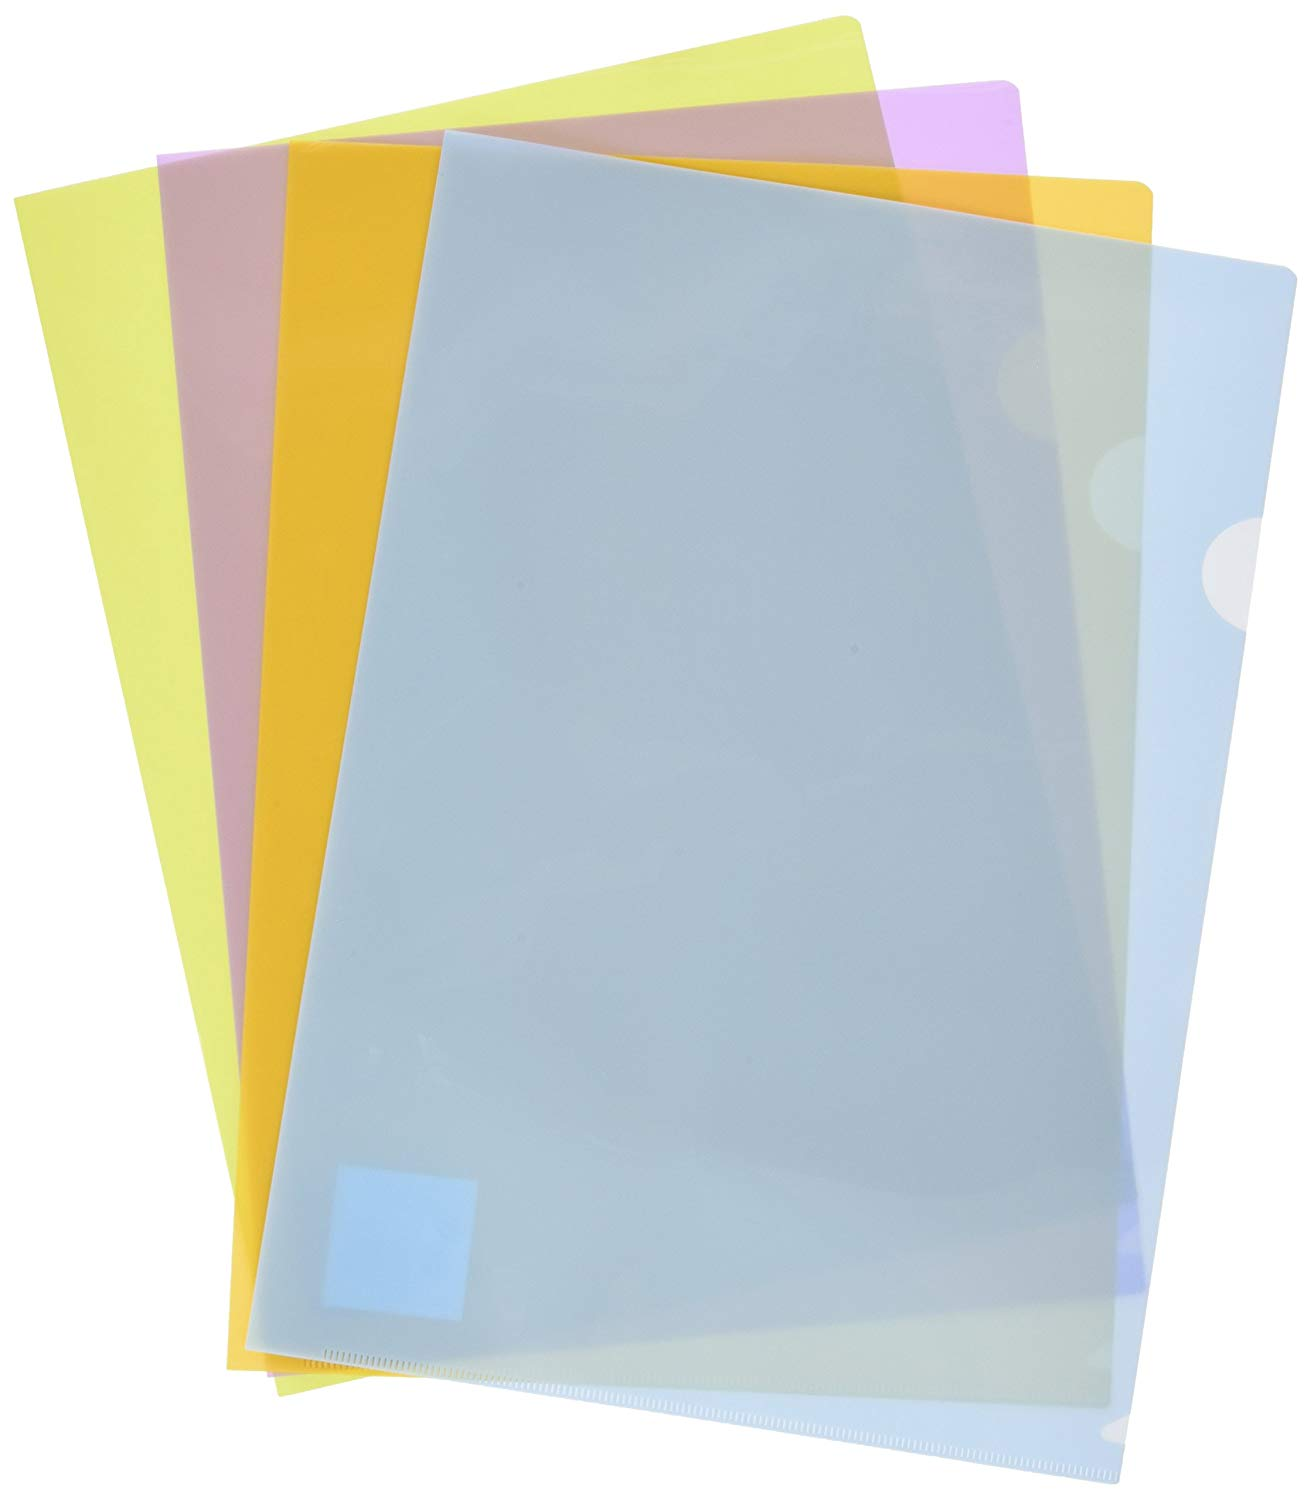 5 STAR 429285 A4 Polypropylene Plastic Folder with Thumb Hole - Assorted Colours (Pack of 10)